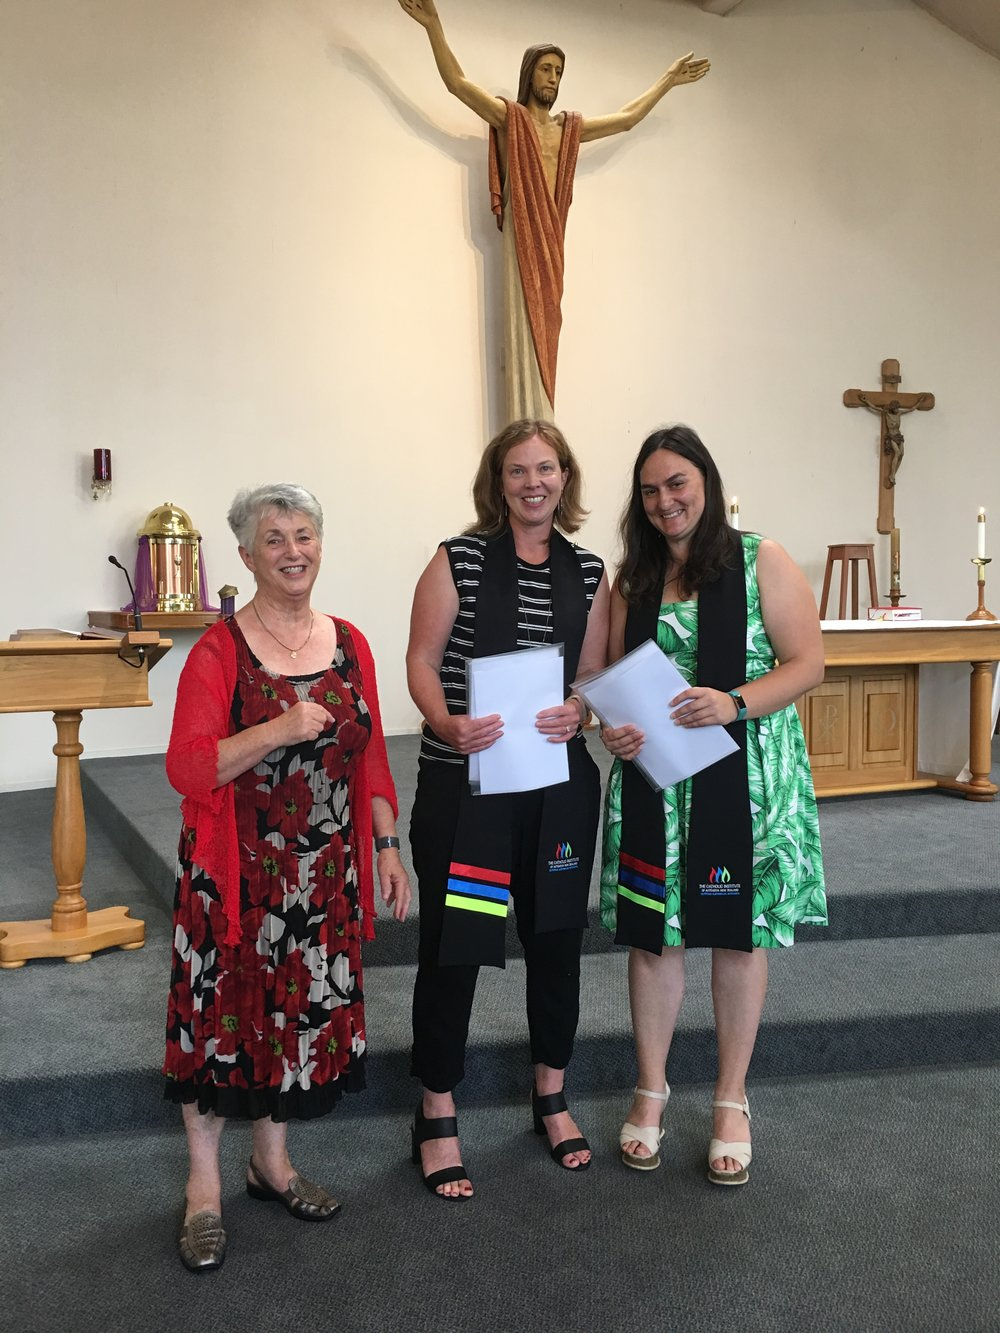 Recent Catholic Institute Graduates Erin Clayton (right) and Rhonda McFarlane (middle) with Cynthia Piper from the Catholic Institute.